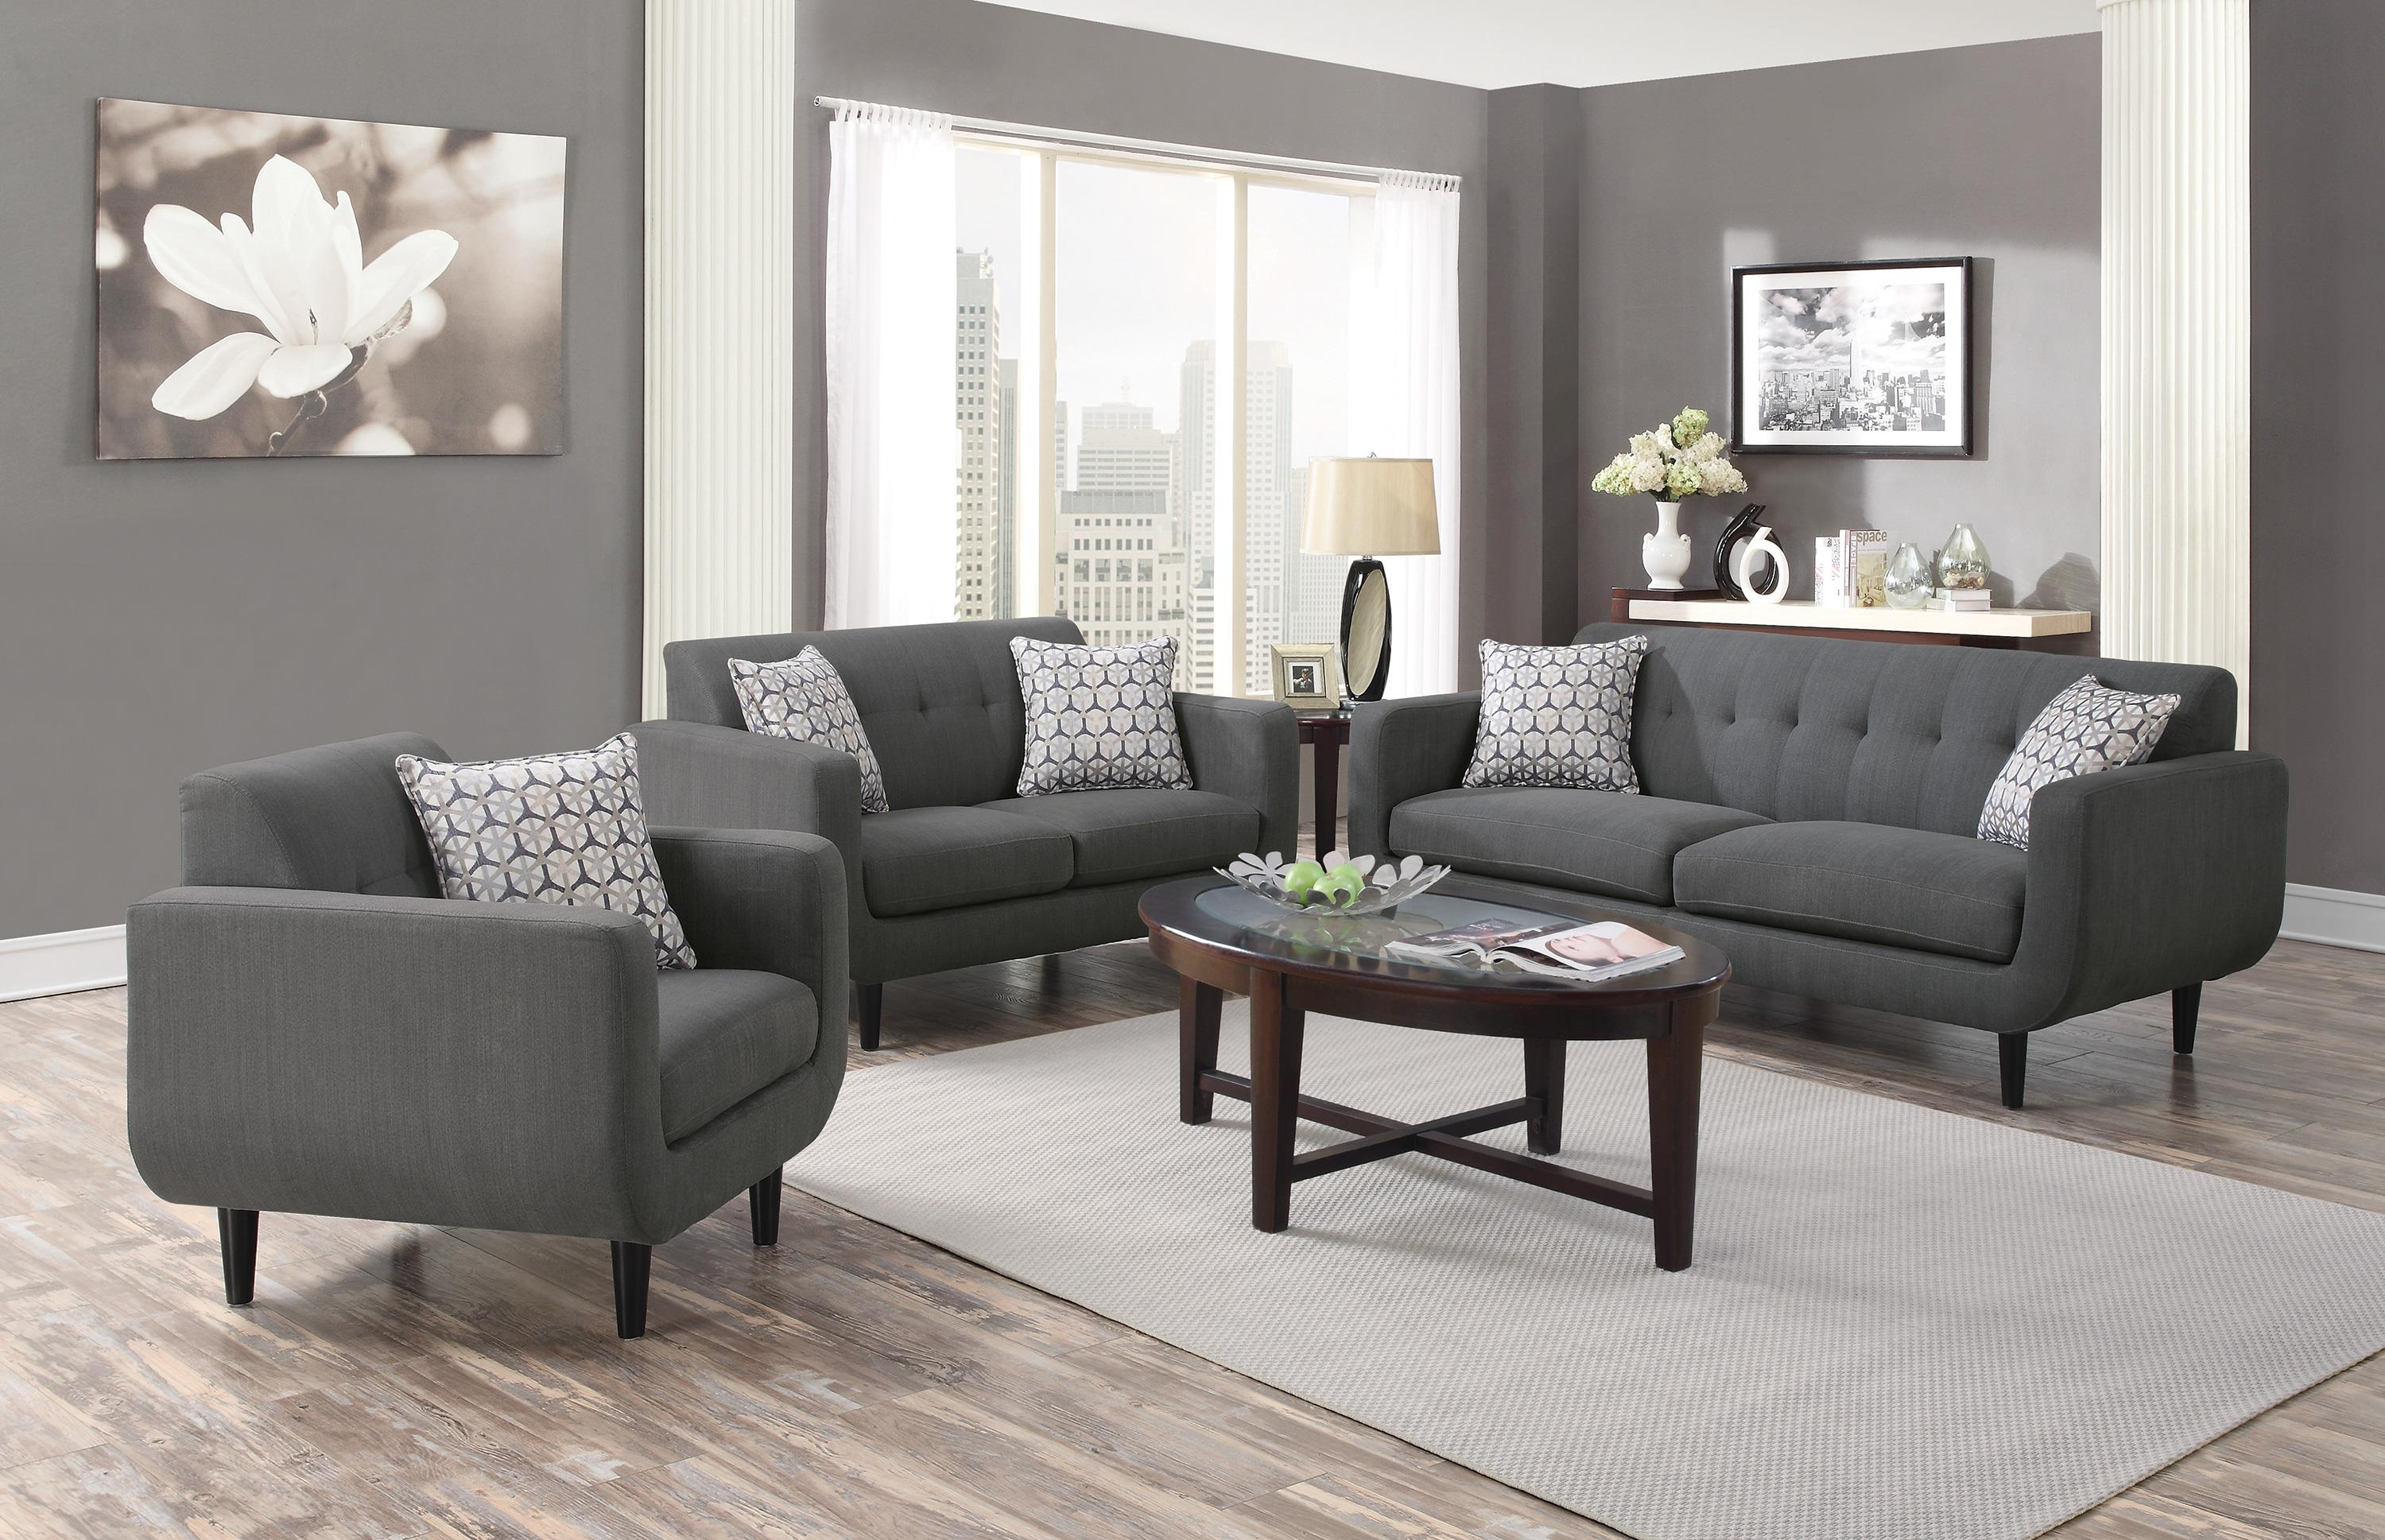 Coaster stansall 2pc grey sofa loveseat set dallas tx - Modelos de sofas ...